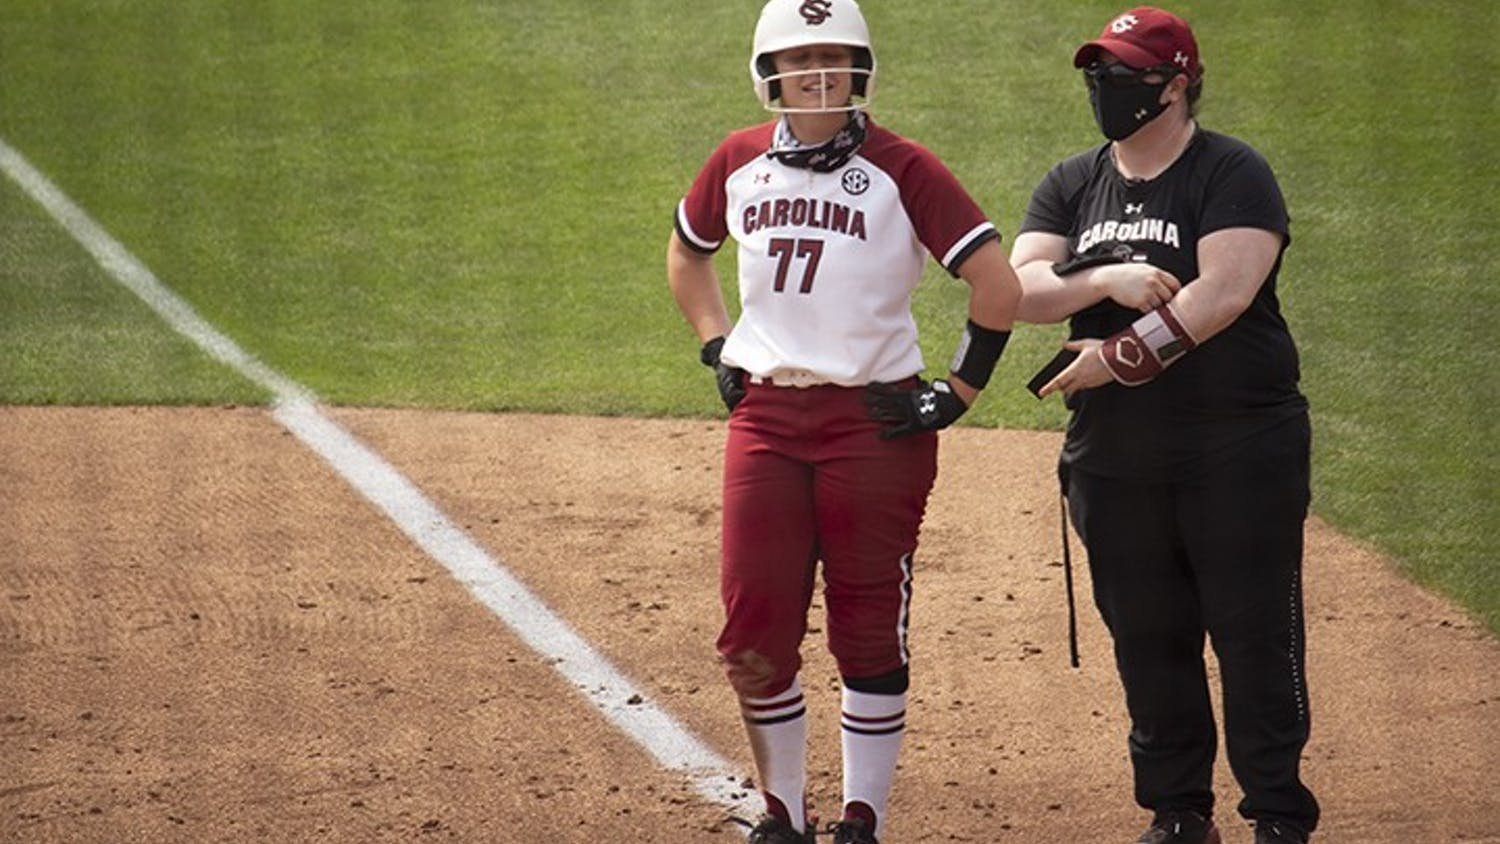 Junior infielder Kassidy Krupit stands at first base talking to one of her coaches.